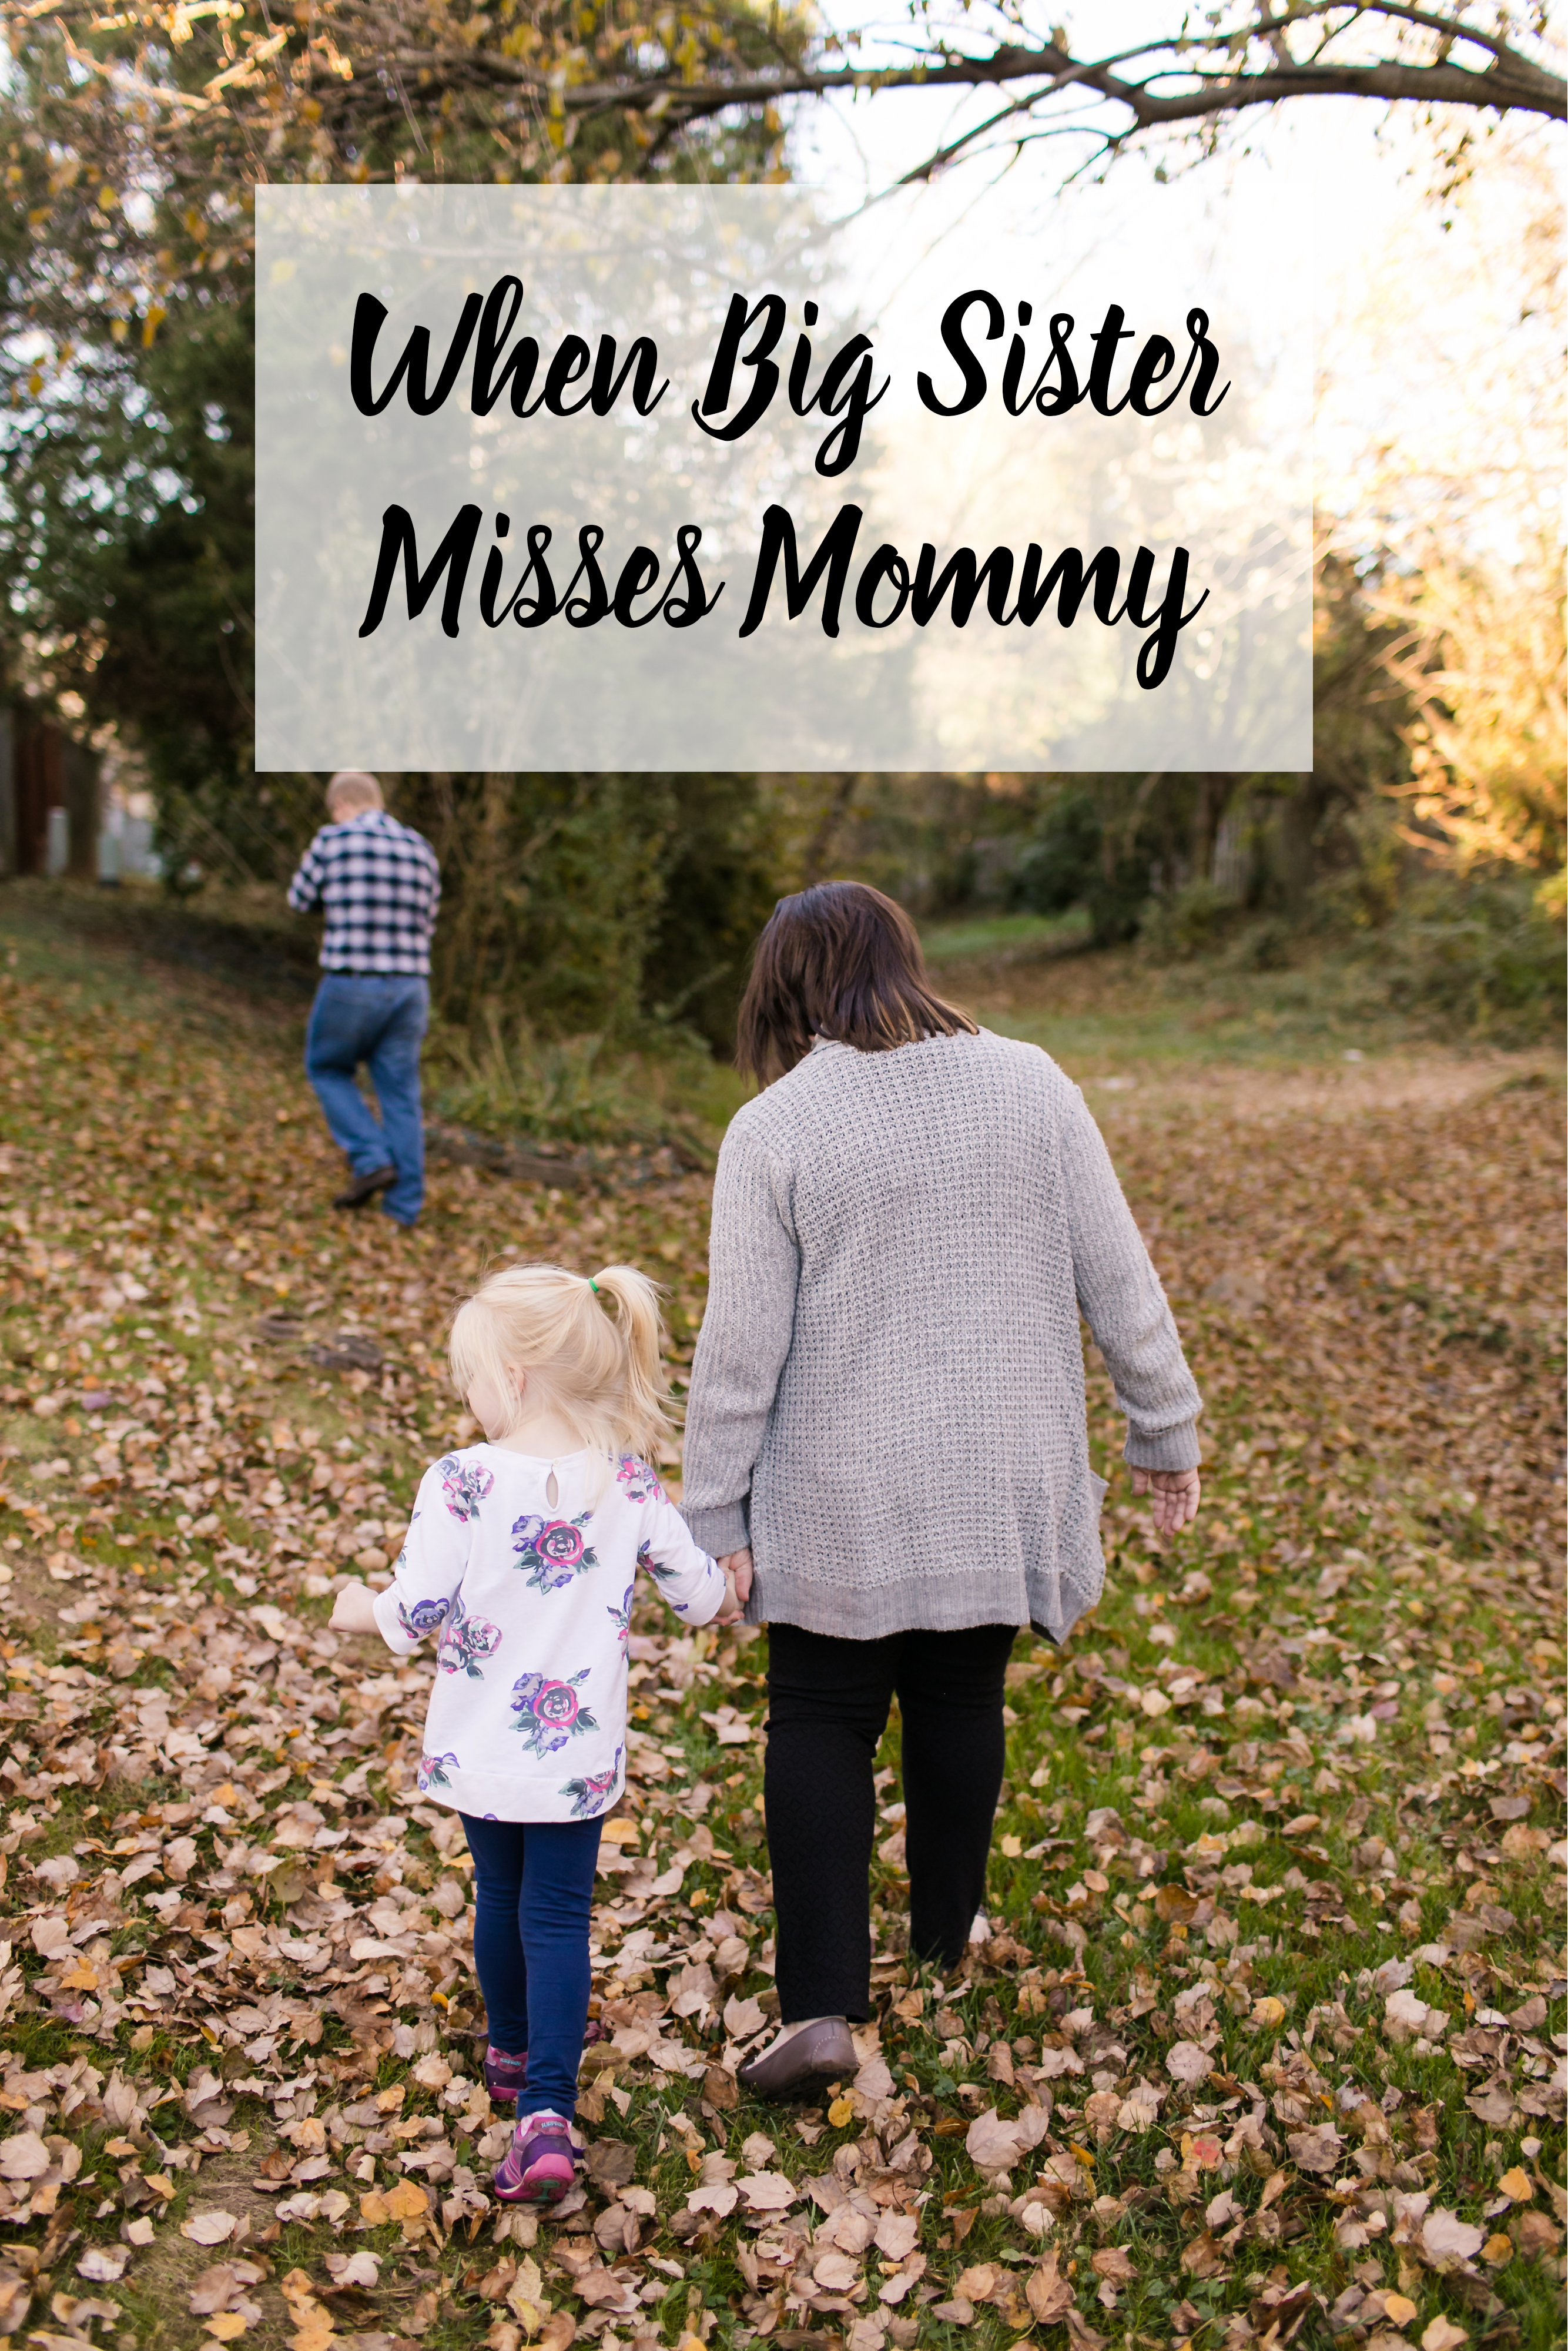 Becoming a big sister is an exciting time, but it brings its own share of issues. What happens when big sister misses mommy?